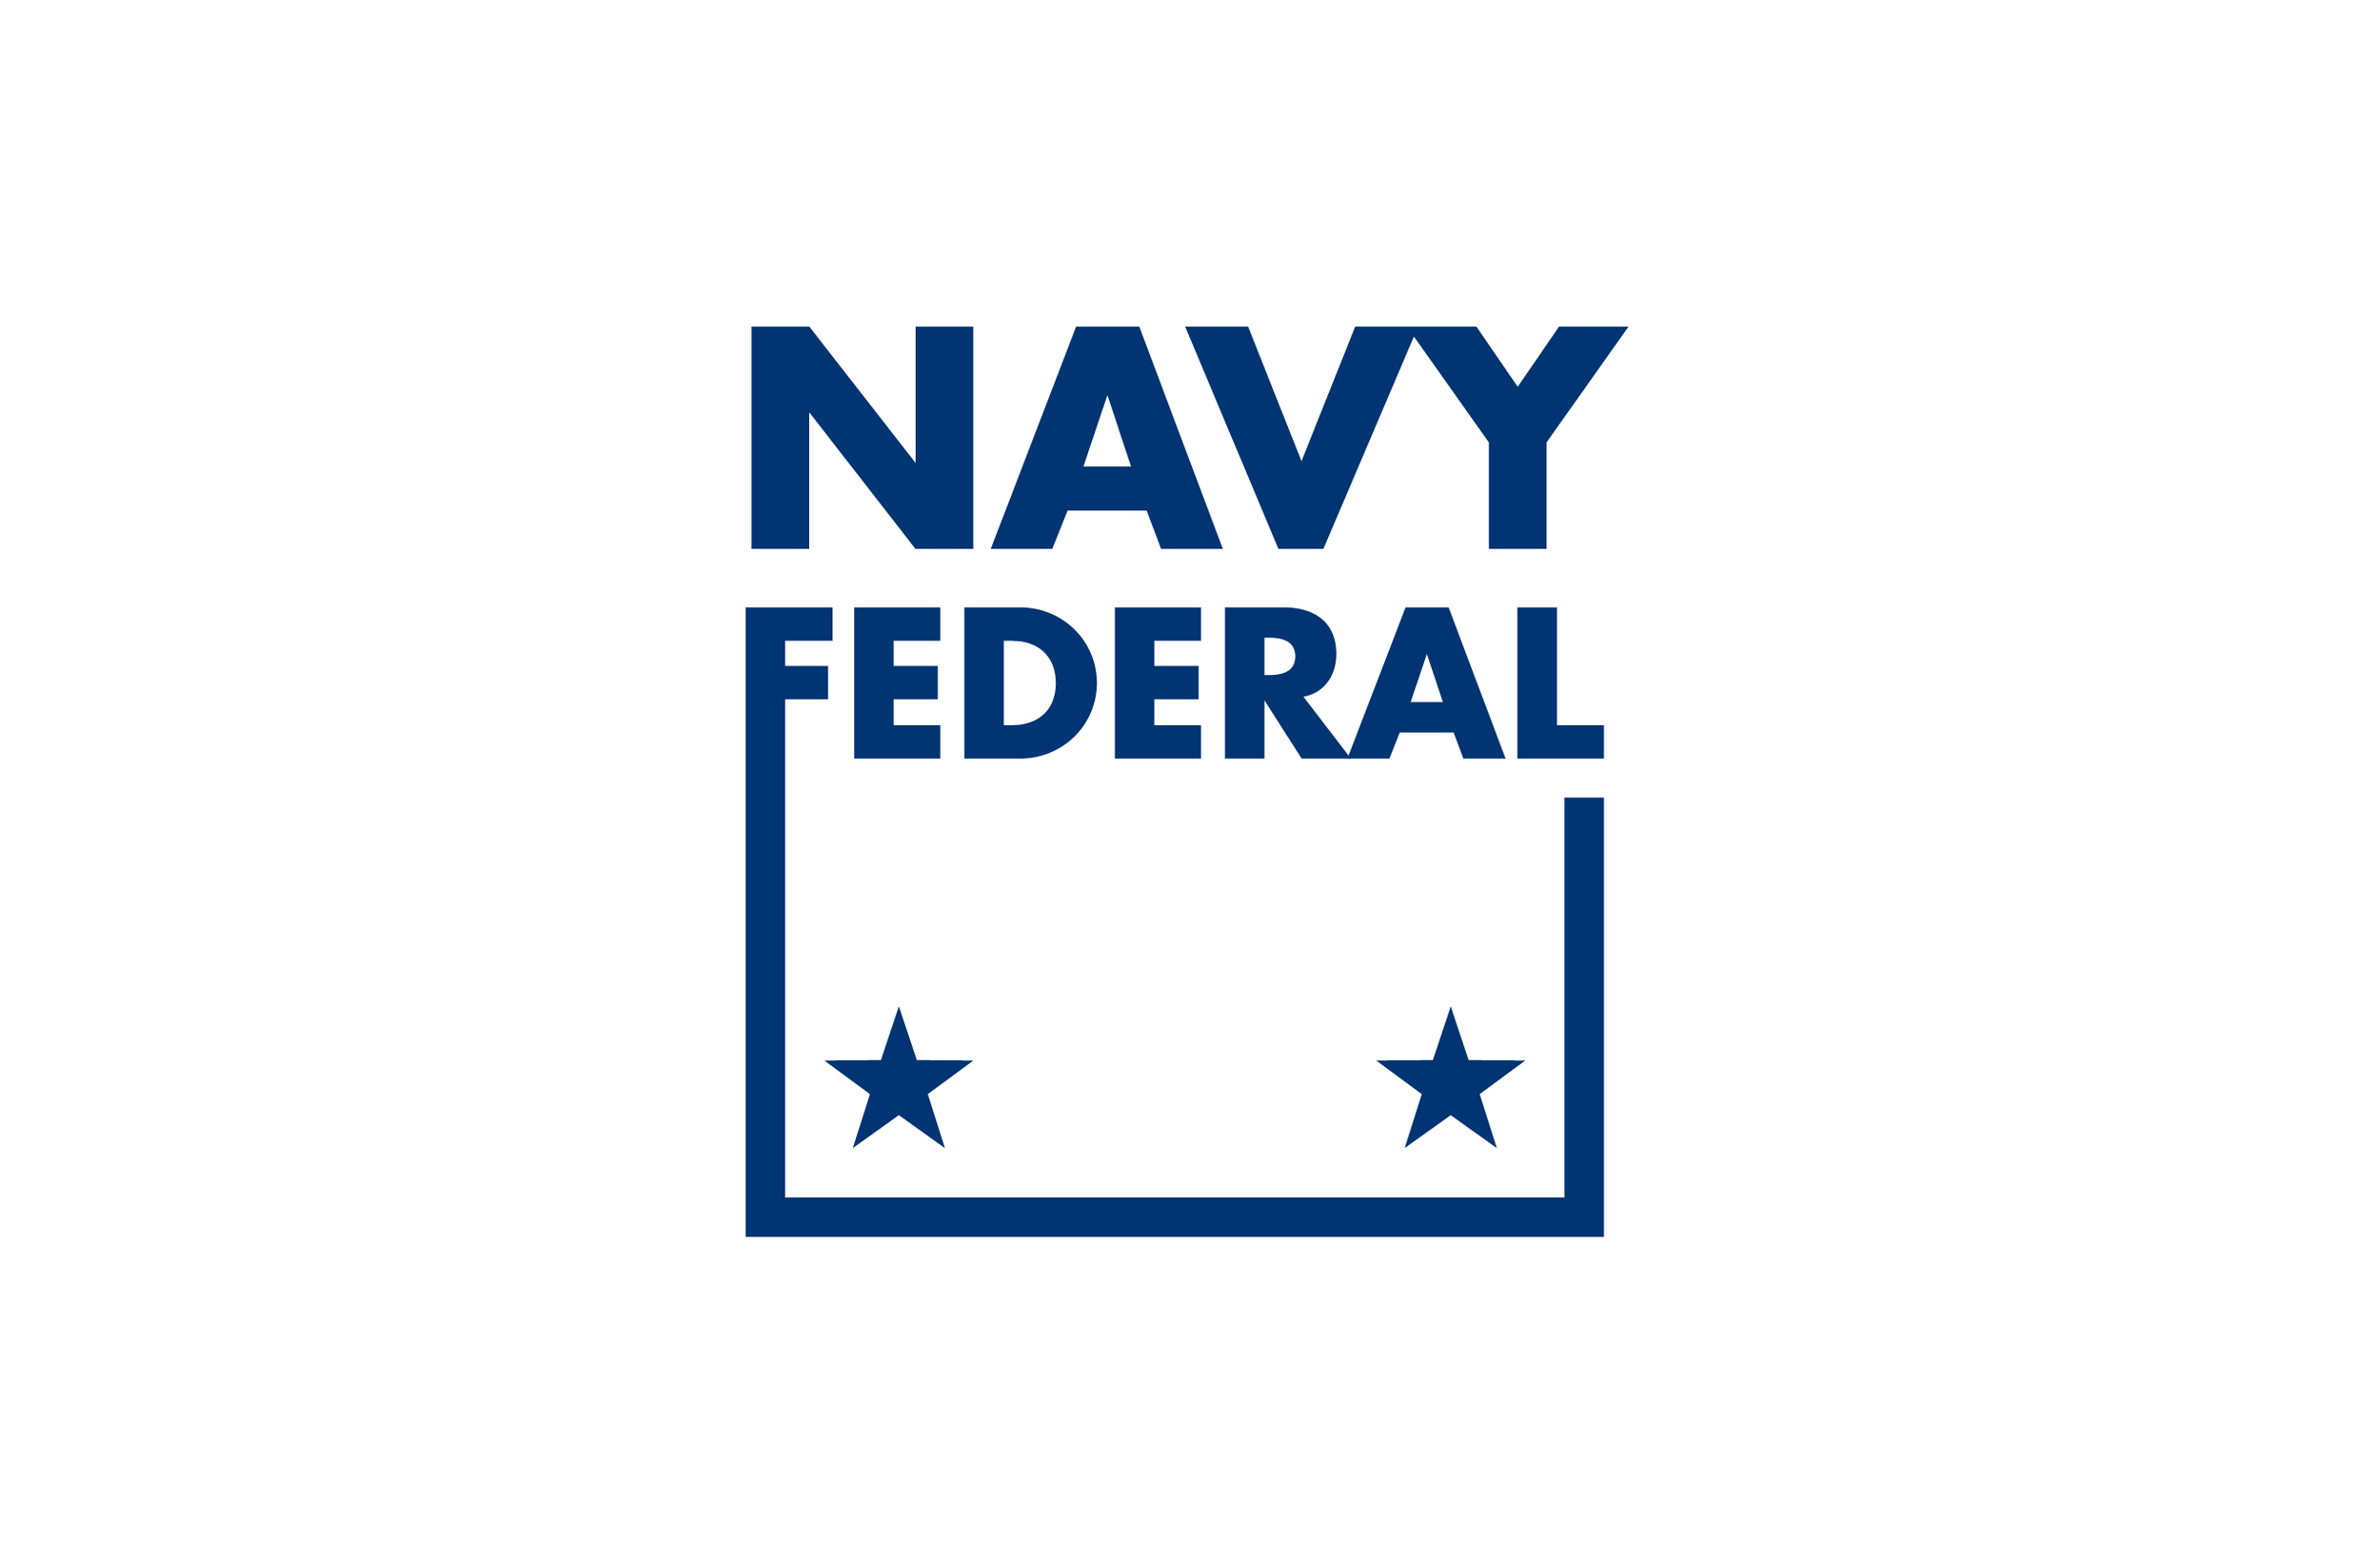 navy_federal.png